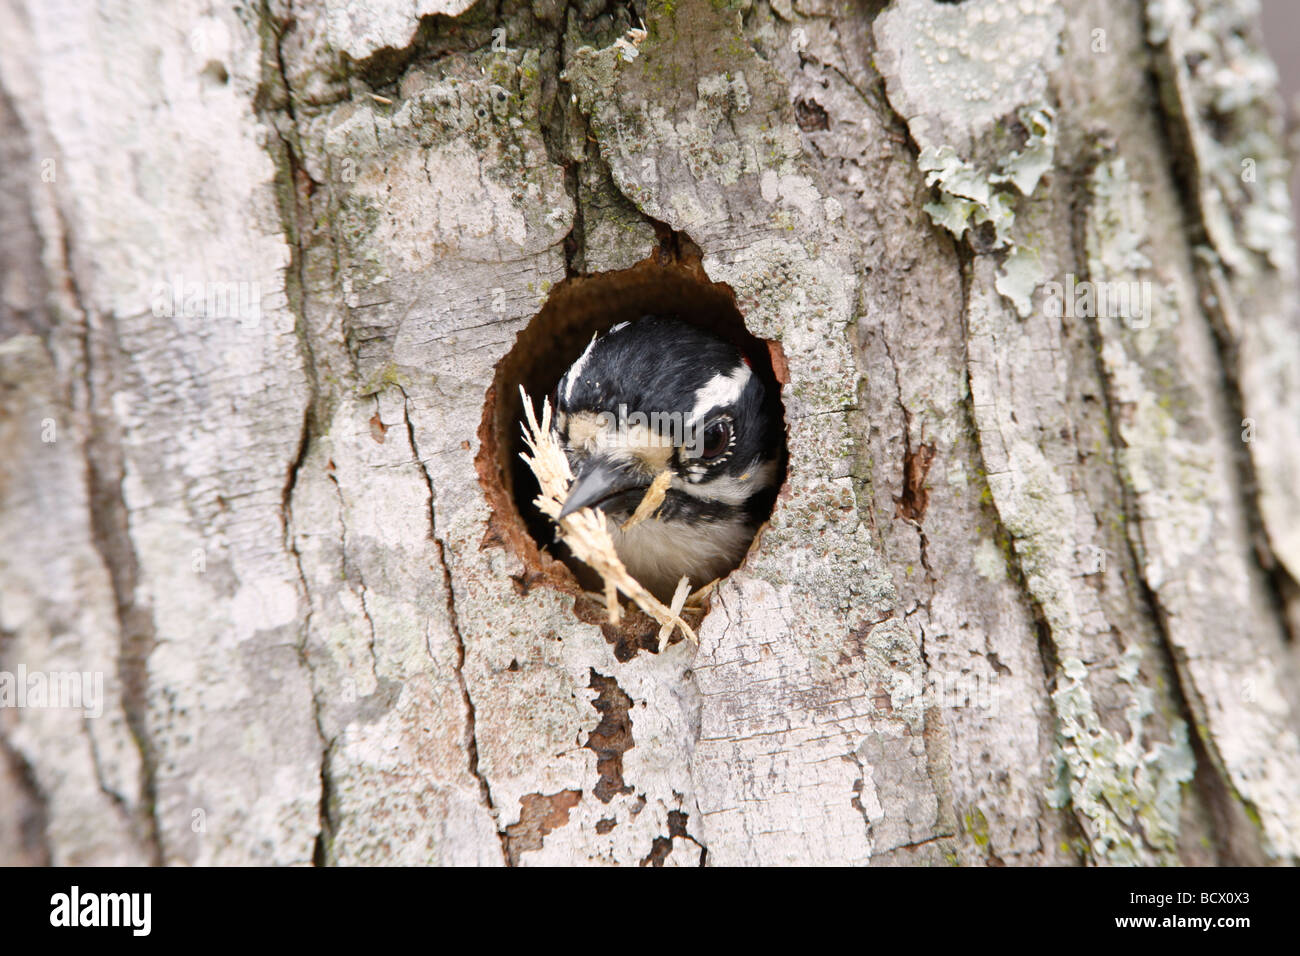 Downy Woodpecker Expelling Wood Chips from Nest - Stock Image